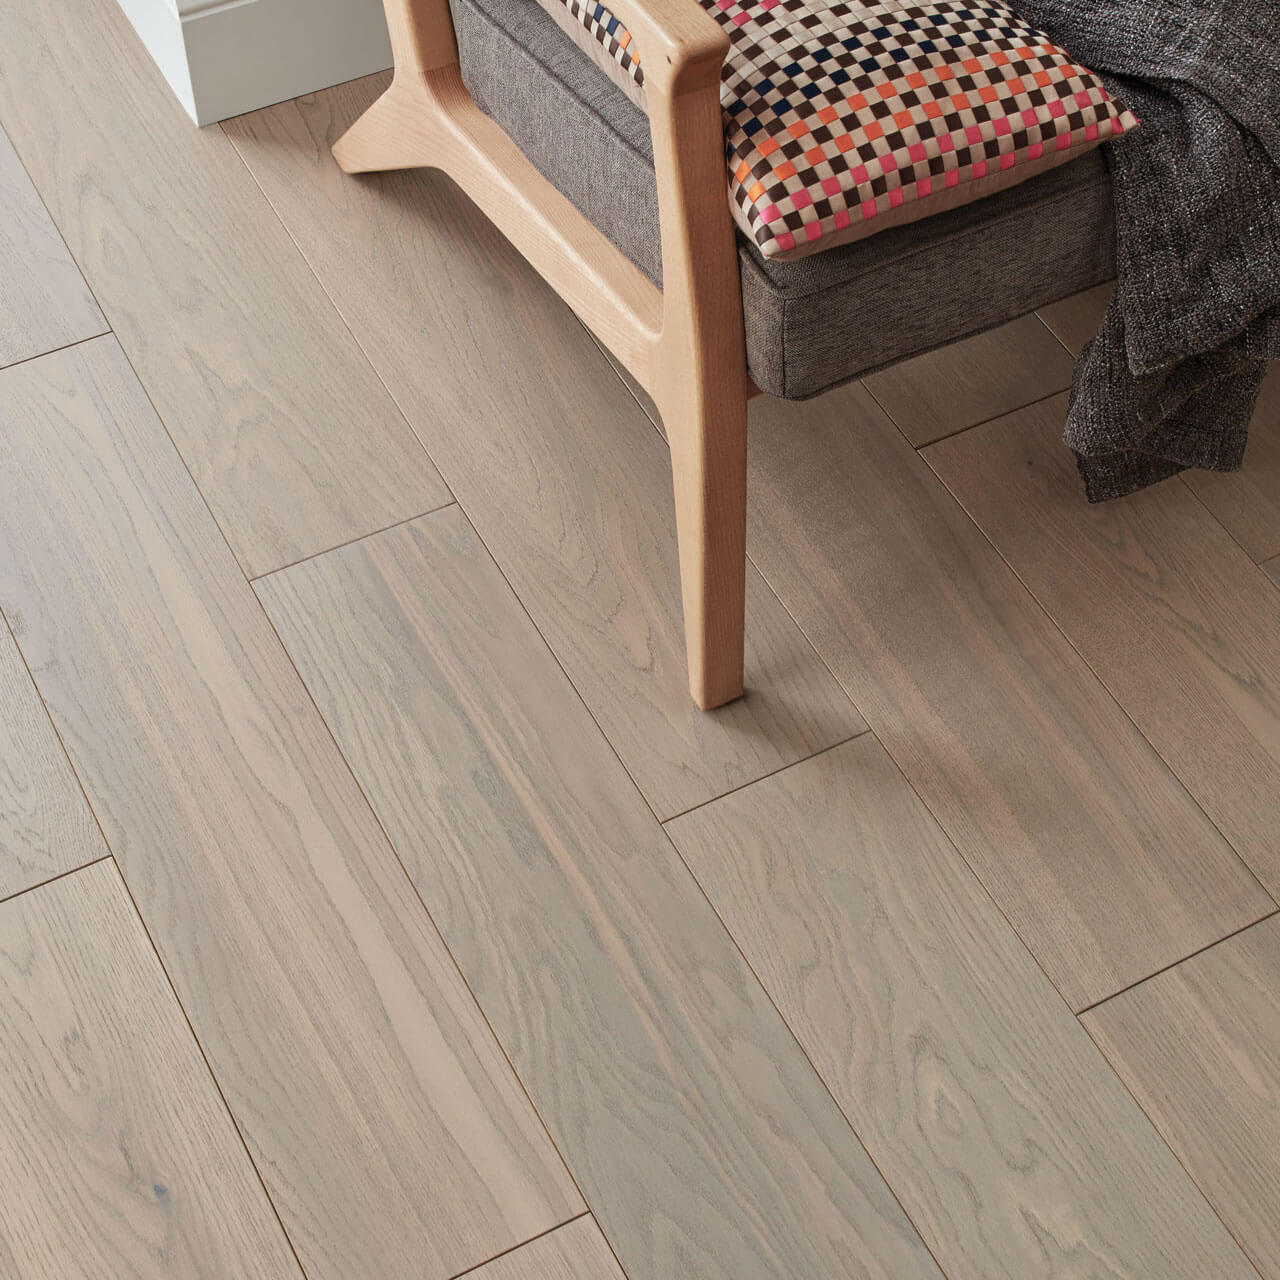 Woodpecker Salcombe Dune Oak Brushed & Matt Lacquered 45-WGR-016 Engineered Wood Flooring